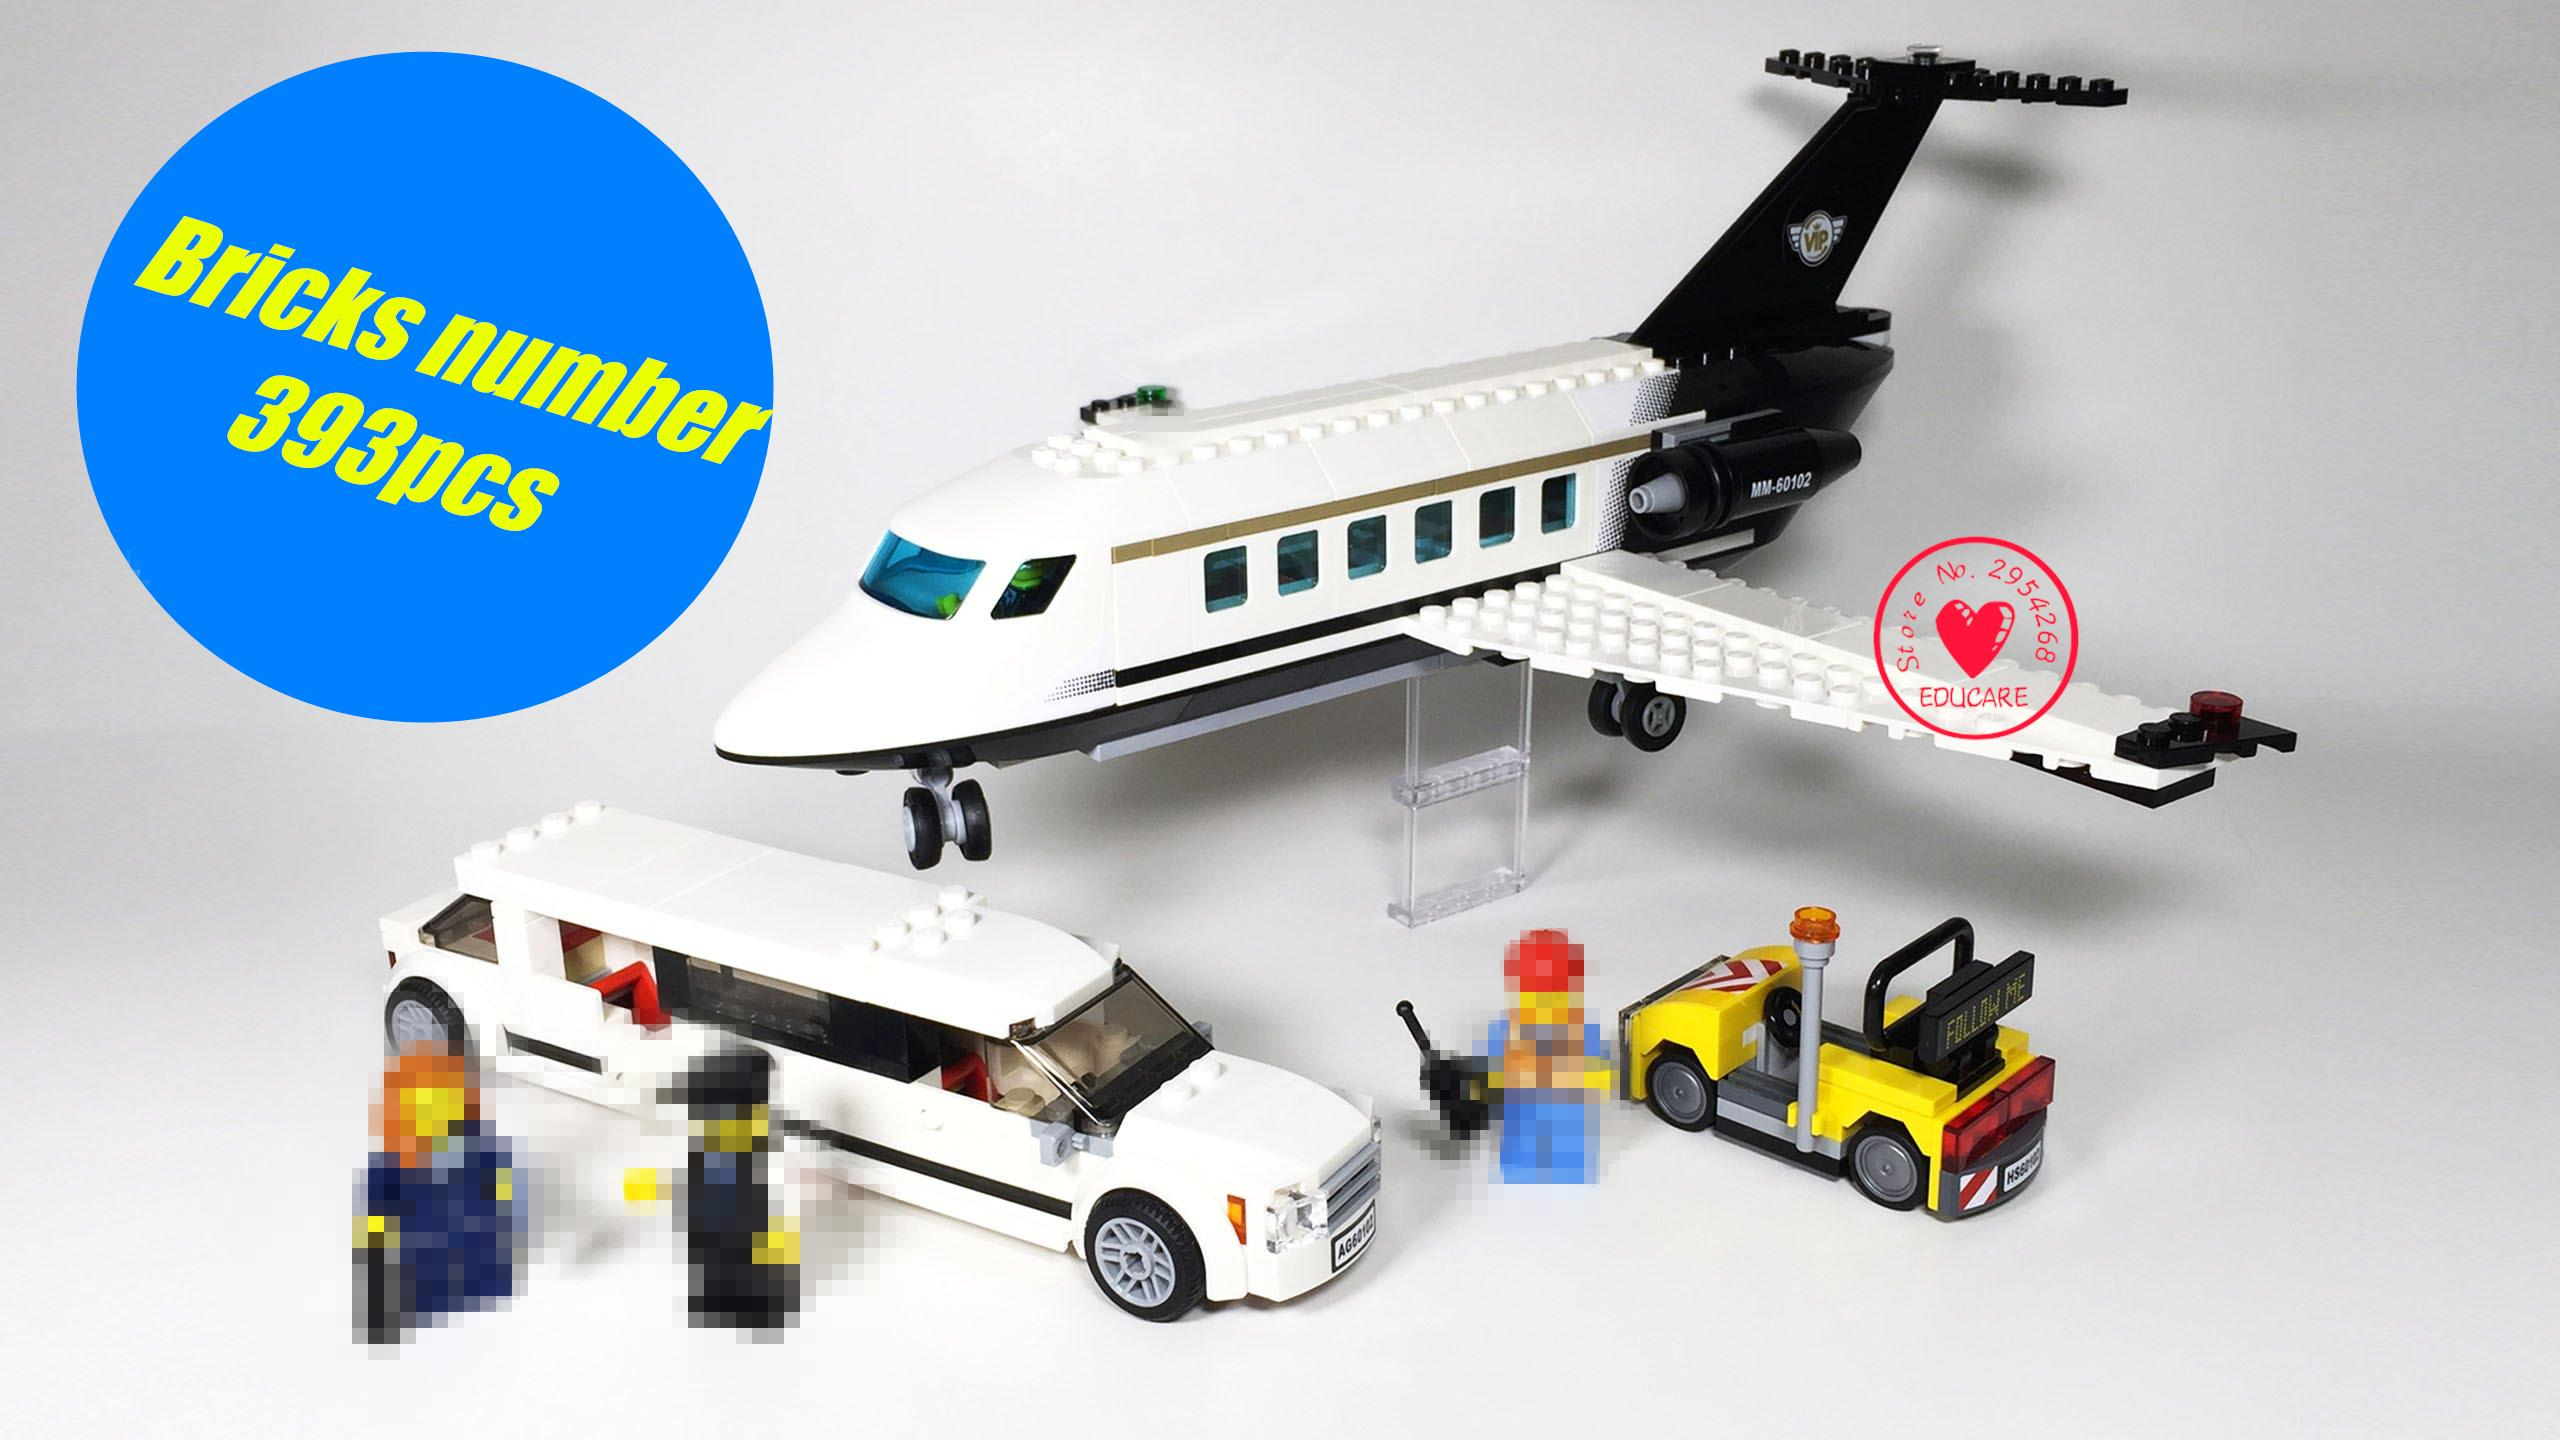 Lepin 02044 New Genuine City Series Airport VIP service model Building Blocks Bricks Educational Toys for Children gifts 60102 1710 city swat series military fighter policeman building bricks compatible lepin city toys for children